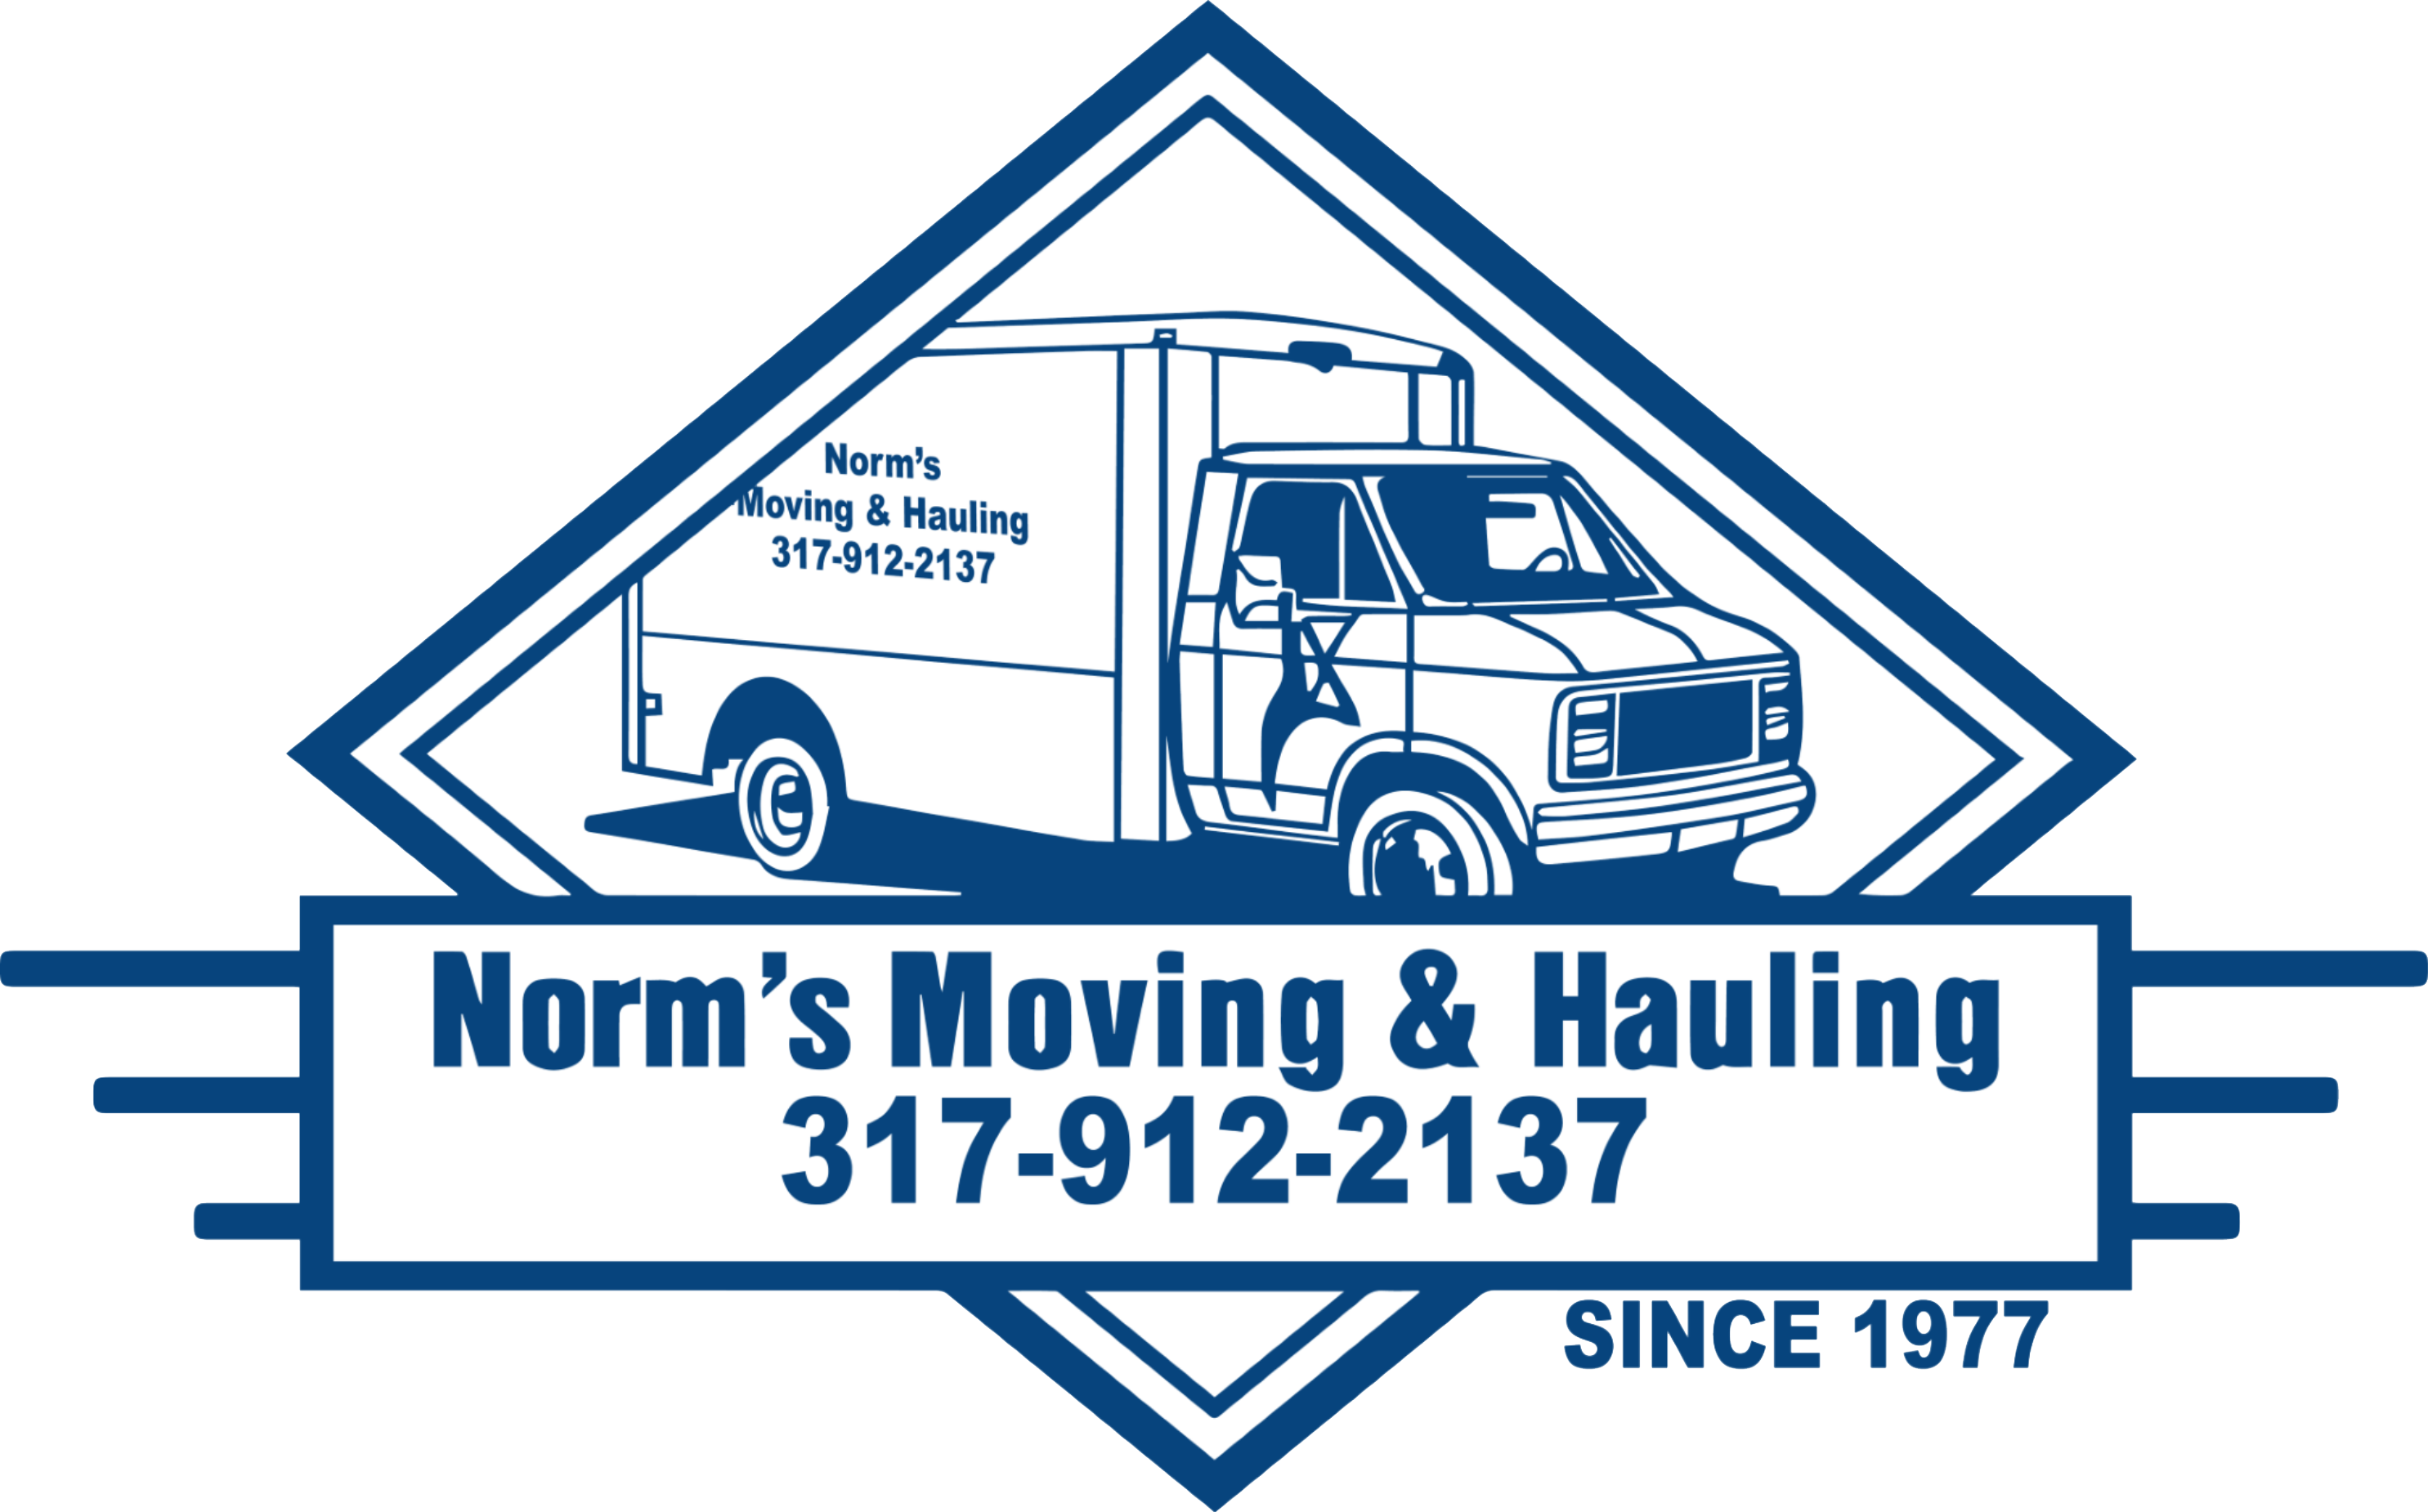 Norms Moving and Hauling